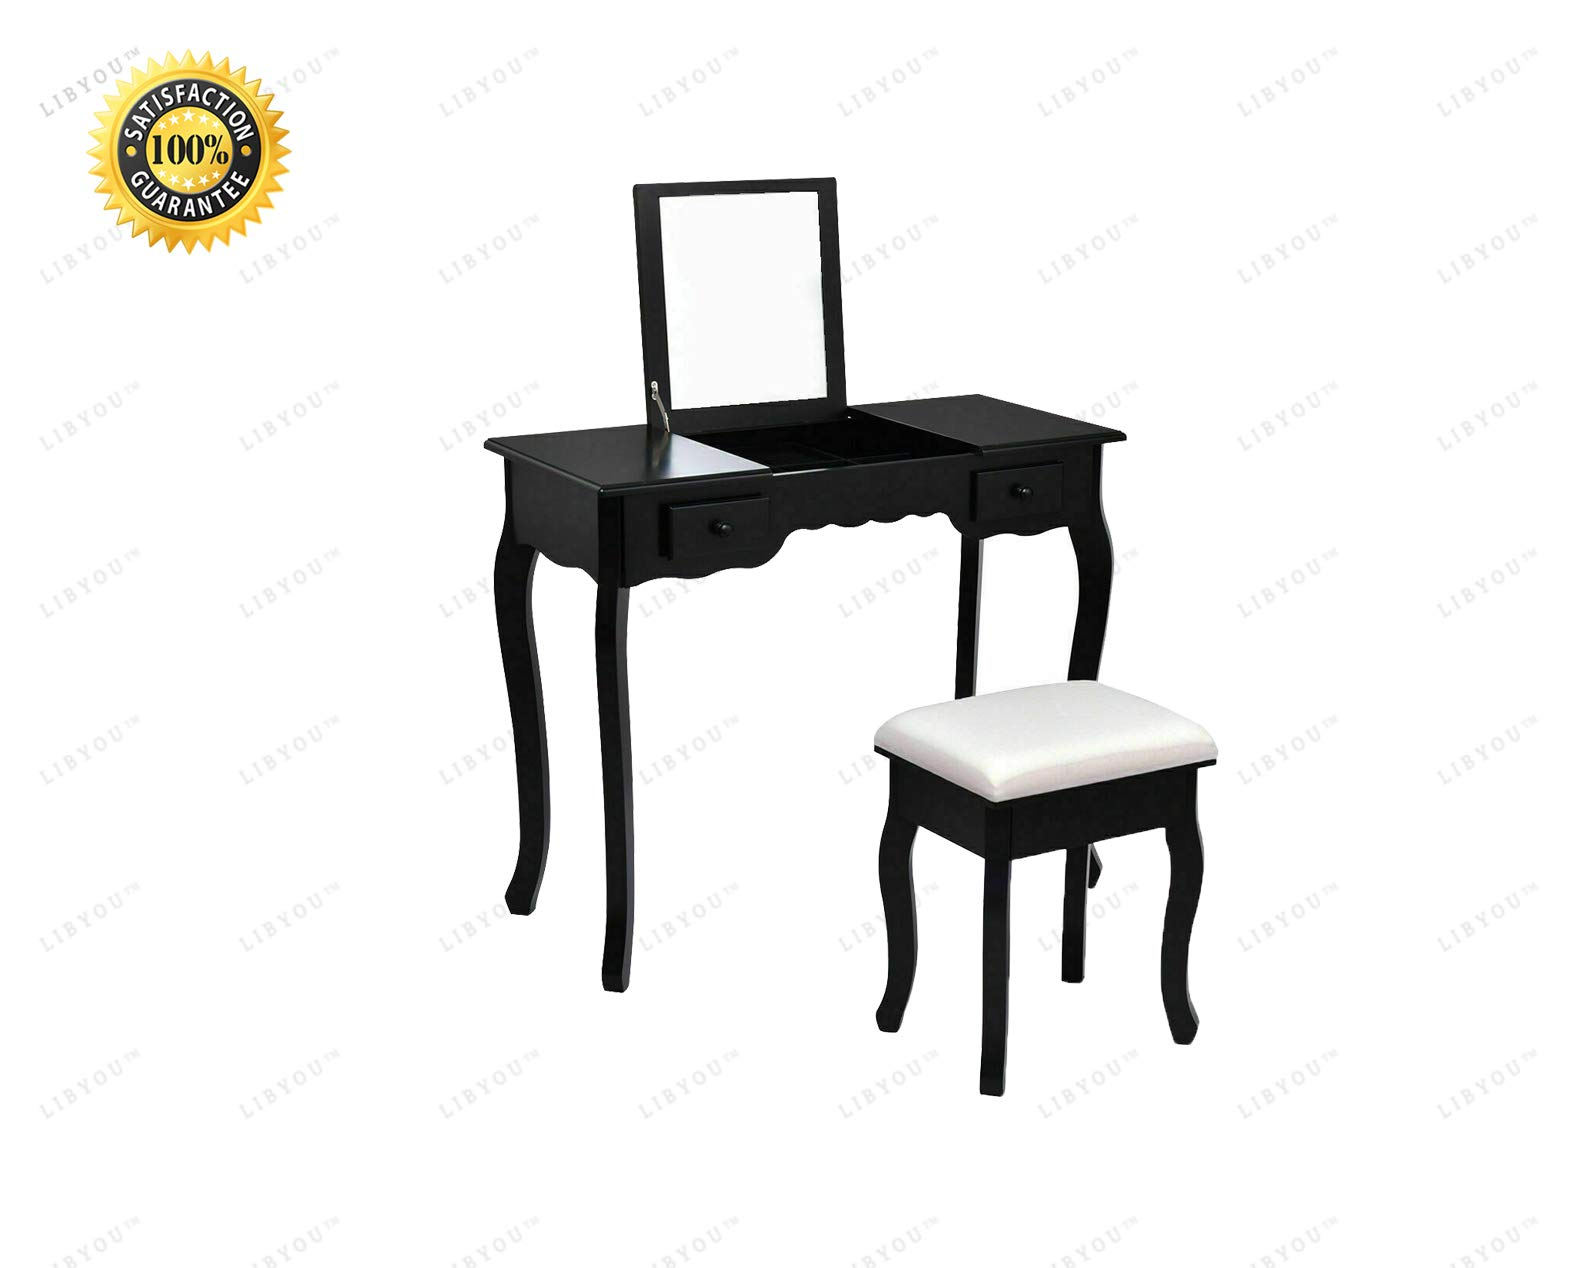 LIBYOU__Dressing Table Set,Vanity Dressing Table Set, Mirrored Bathroom Furniture,Stool Table Desk,Vanity Makeup Table Stool Set,Wood Makeup Table Stool Set,Wood Makeup Dressing Table